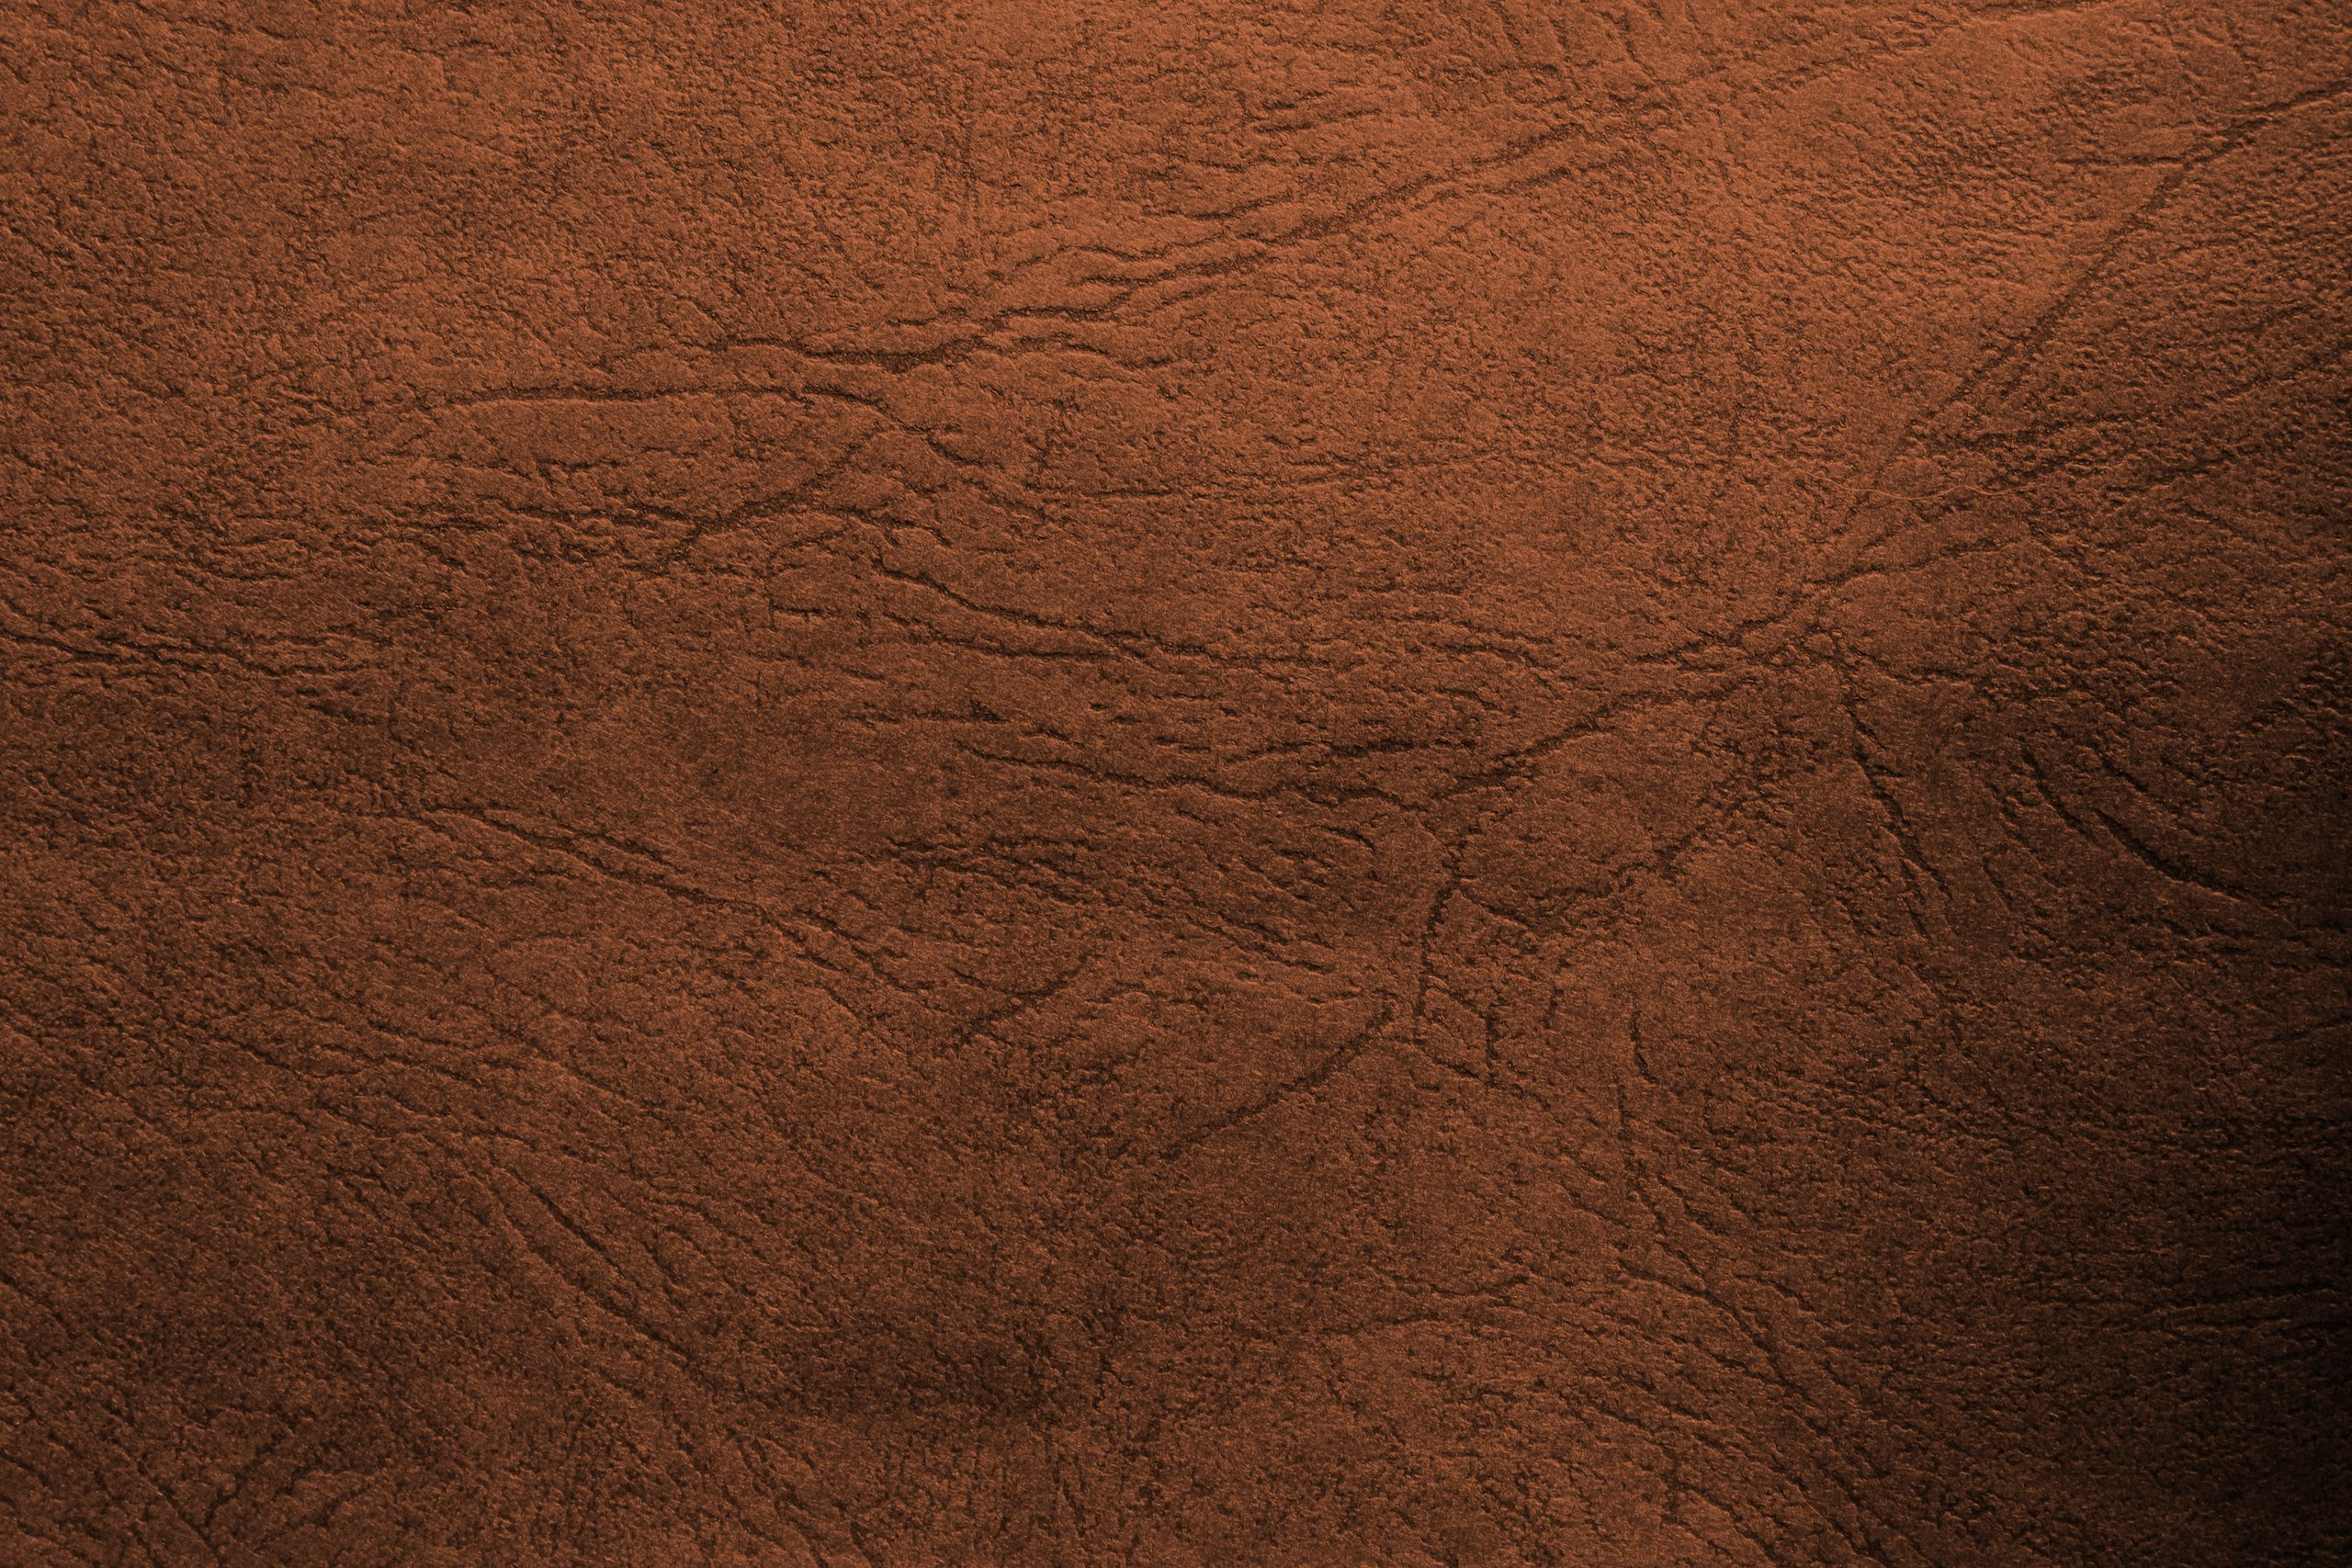 Brown Leather Wallpaper Photo 28317148 Fanpop